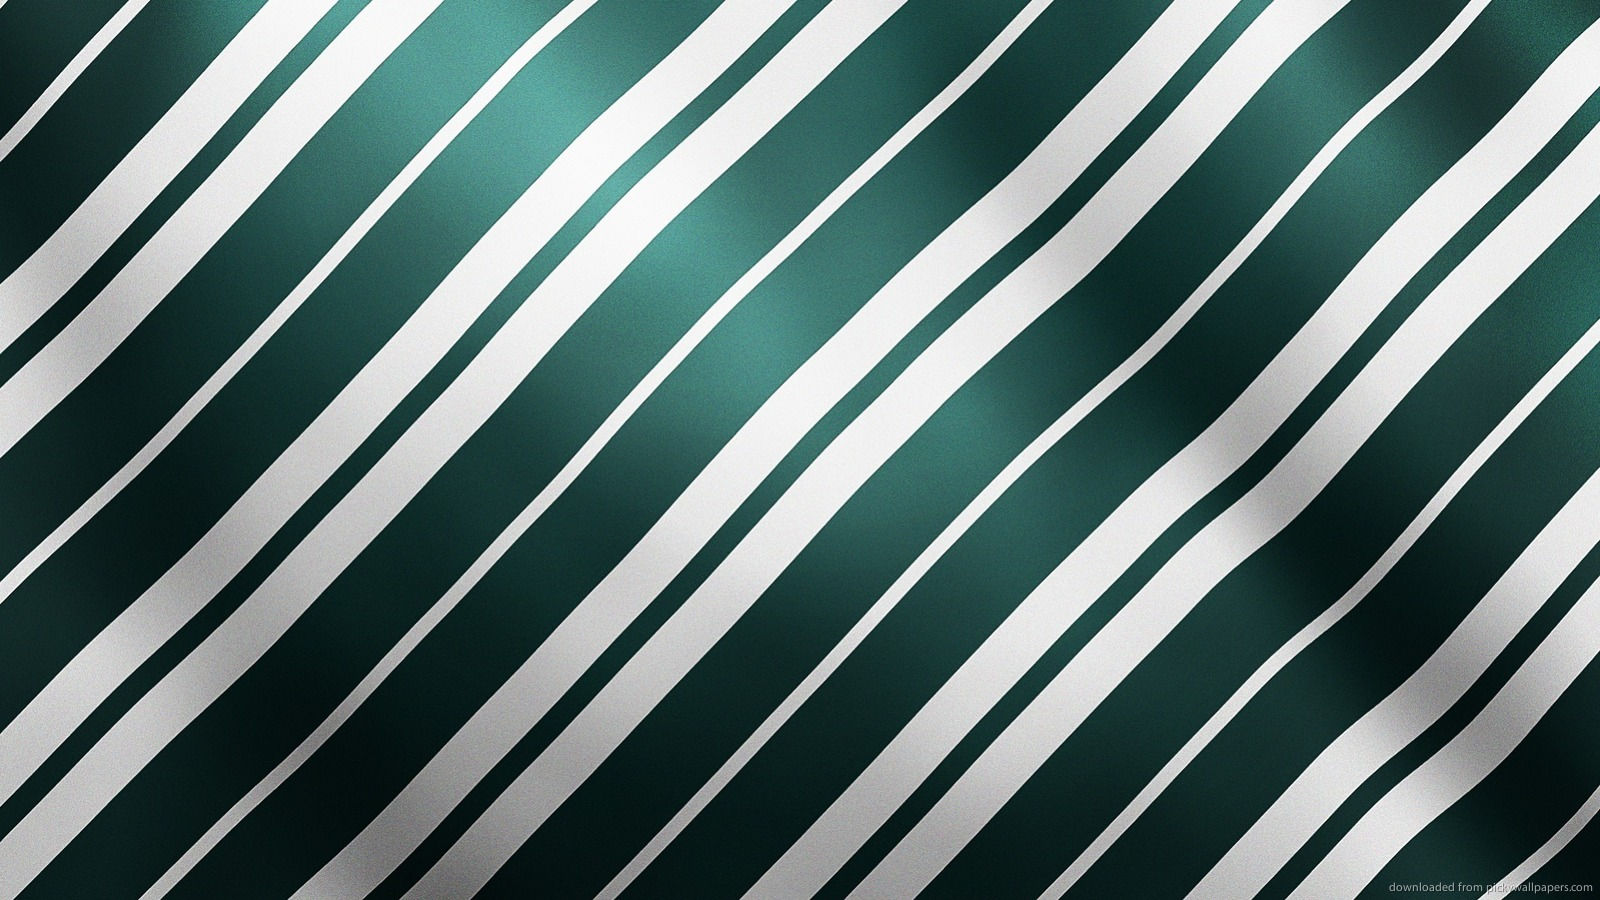 Download 1600x900 Green And White Stripes Wallpaper 1600x900